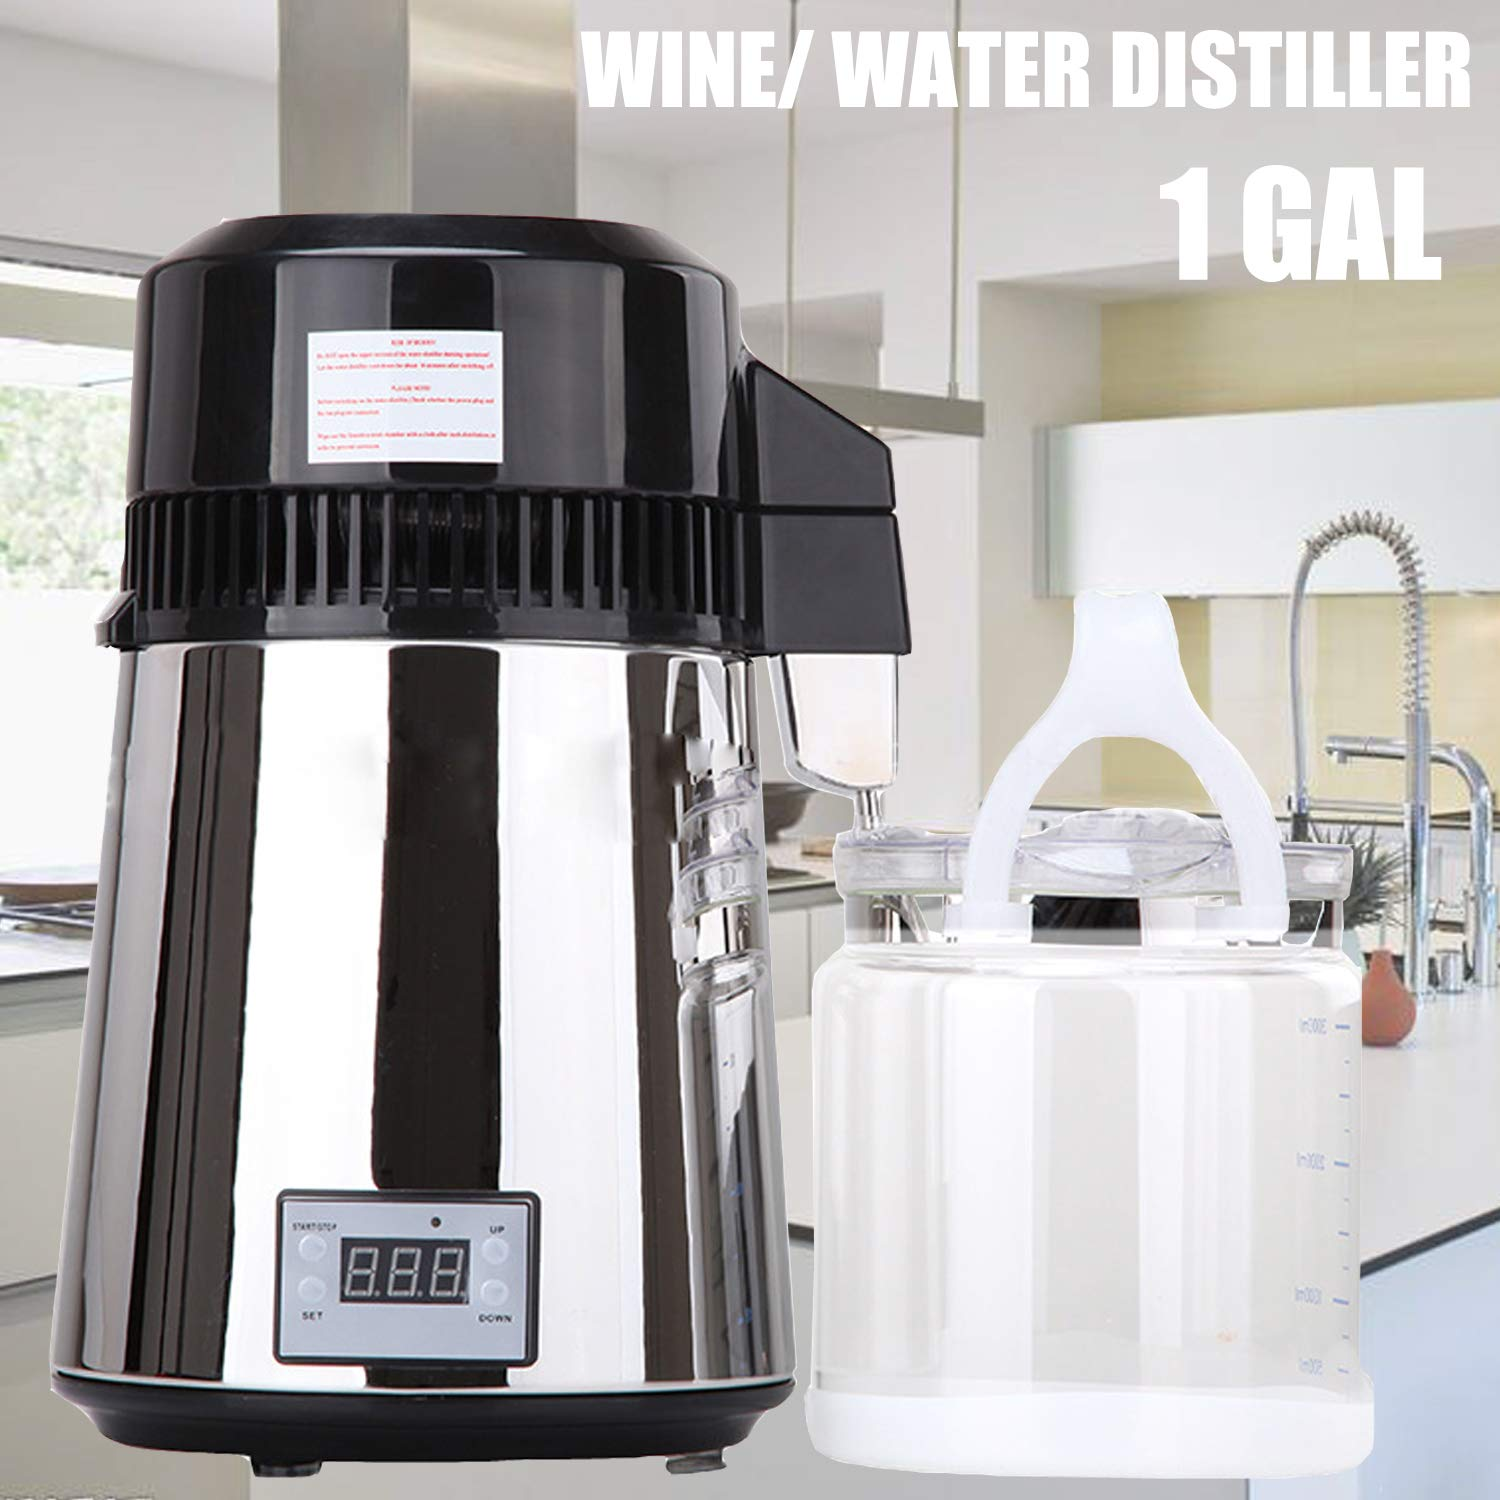 ZTPOWER Distilled Water Alcohol Machine 1 Gal Countertop Electric Wine Alcohol Purification Distiller Pure Dew Distillation Kit Moonshine Still Air Whiskey Vodka (Electric, 1GAL)